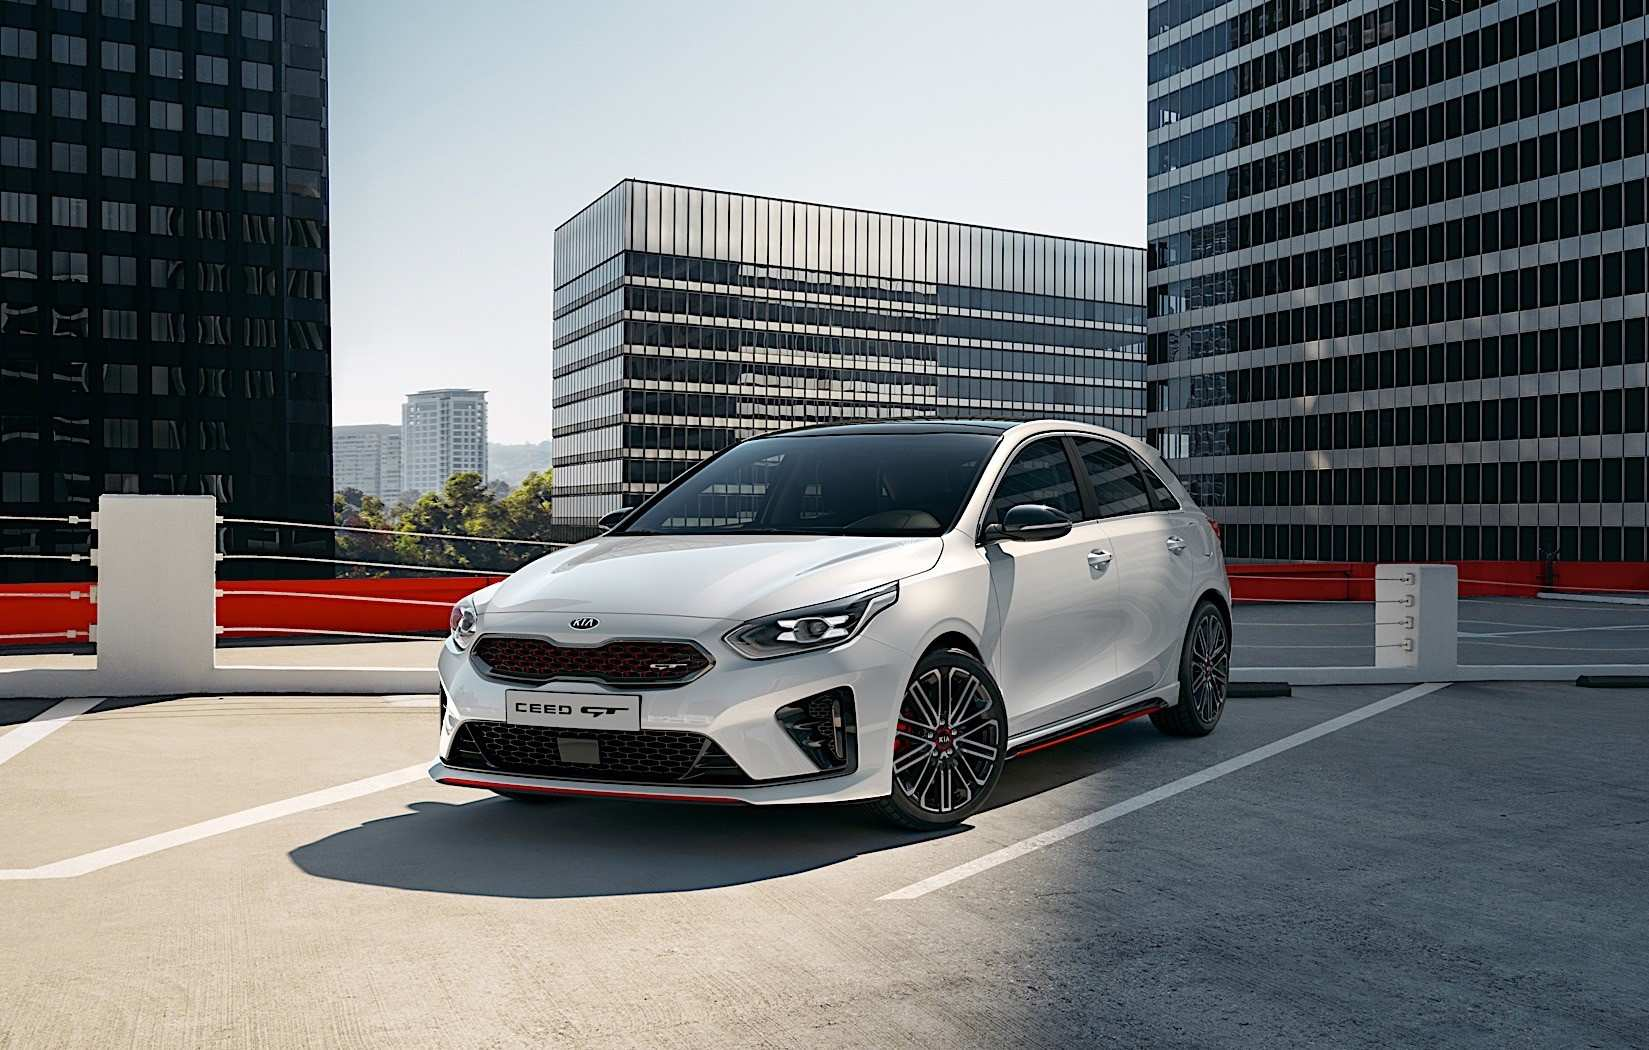 40 Best Review 2020 Kia Forte Hatchback Pictures for 2020 Kia Forte Hatchback